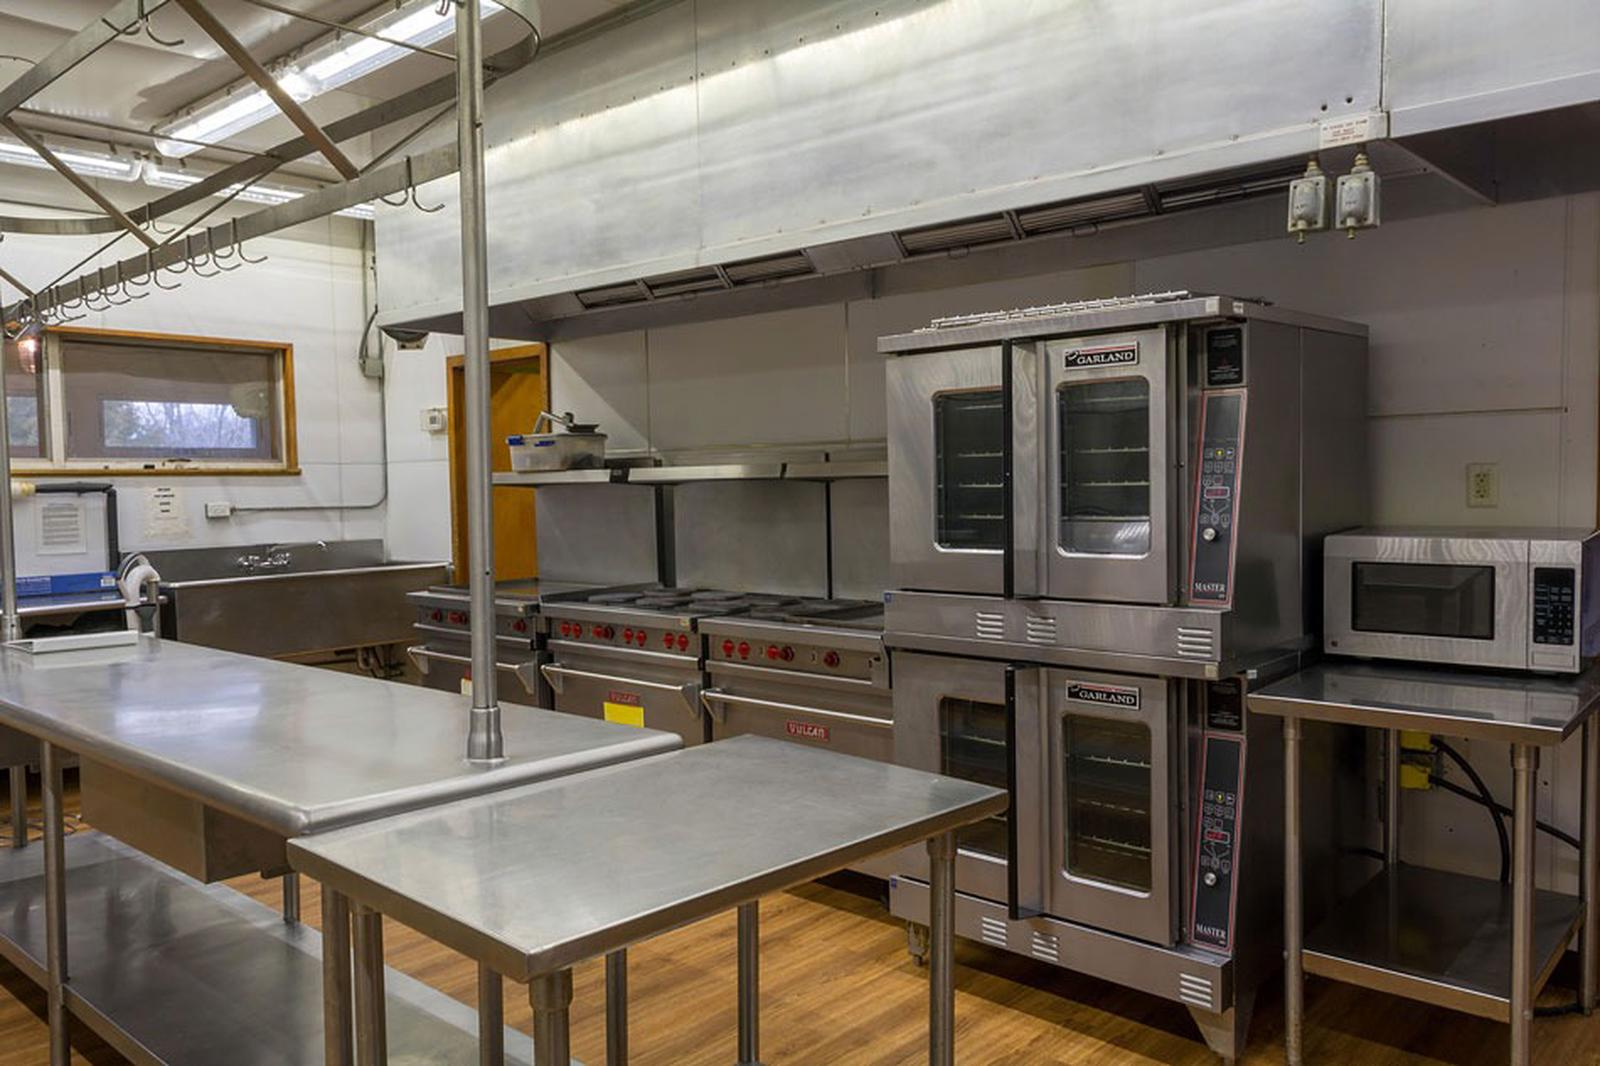 Interior view of kitchen showing stainless prep tables, microwave, convection ovens, 3 gas ranges, vent hood and double sink.                                                                                    Interior view of the kitchen which is connected to the dining hall. The area has heat and air conditioning. Visible equipment includes stainless prep tables, microwave, convection ovens, 3 gas ranges, vent hood and double sink.